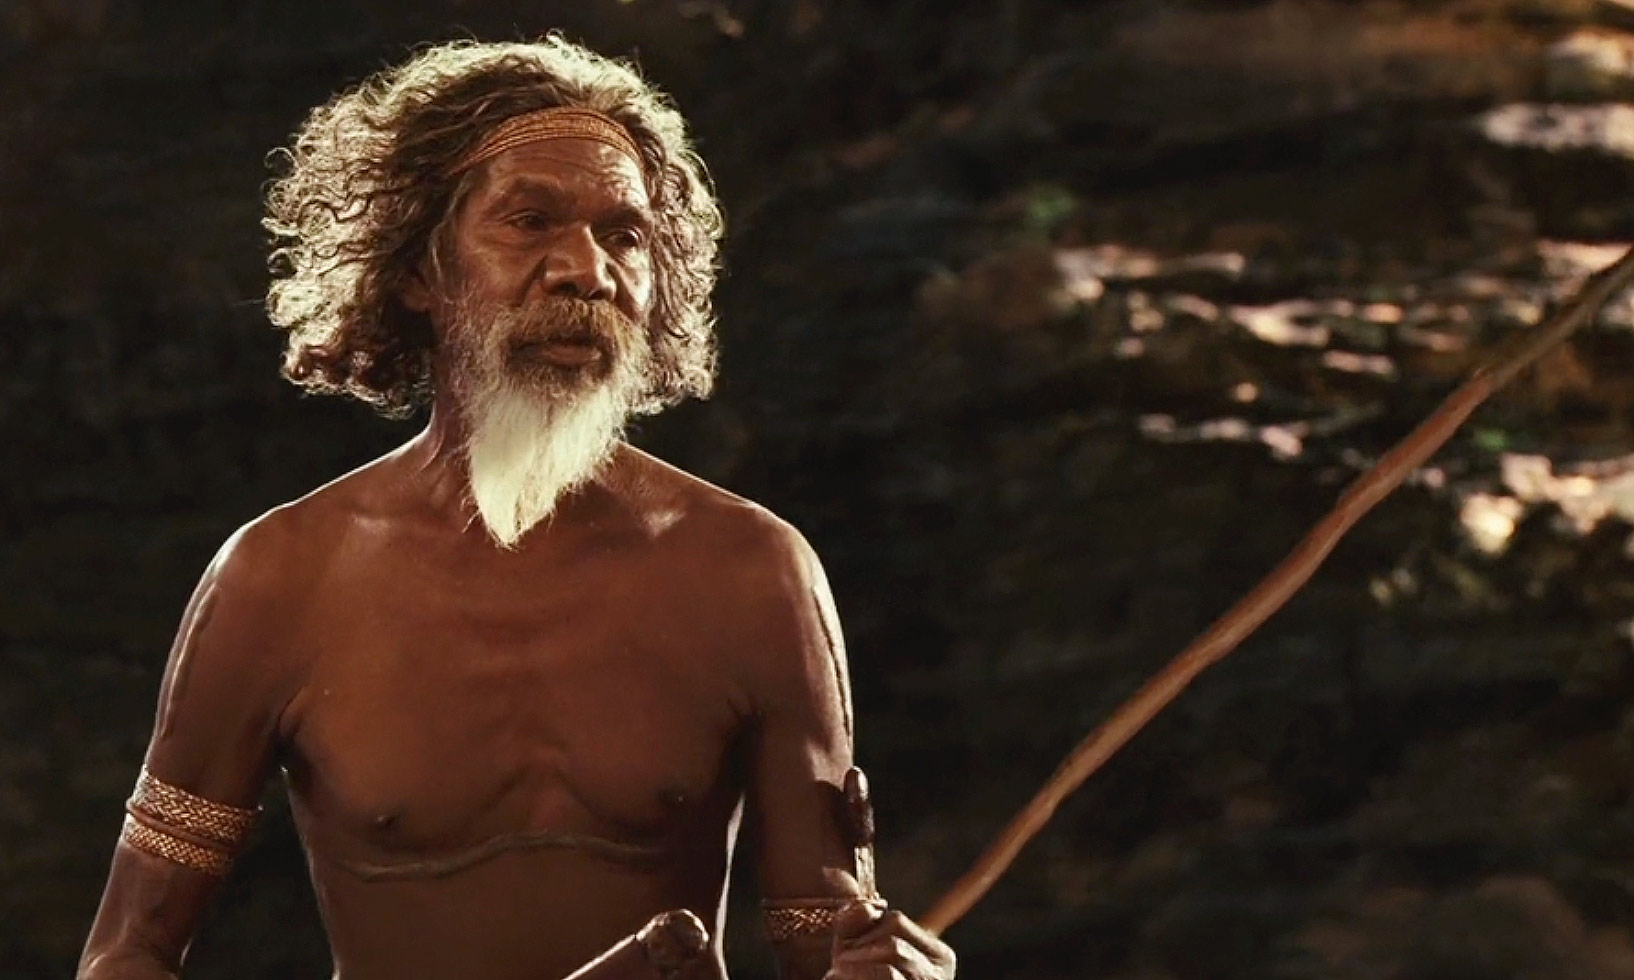 Australia: AUS Feature film. Odd Studio was responsible for producing all the prosthetic tribal satisfactions on the film.